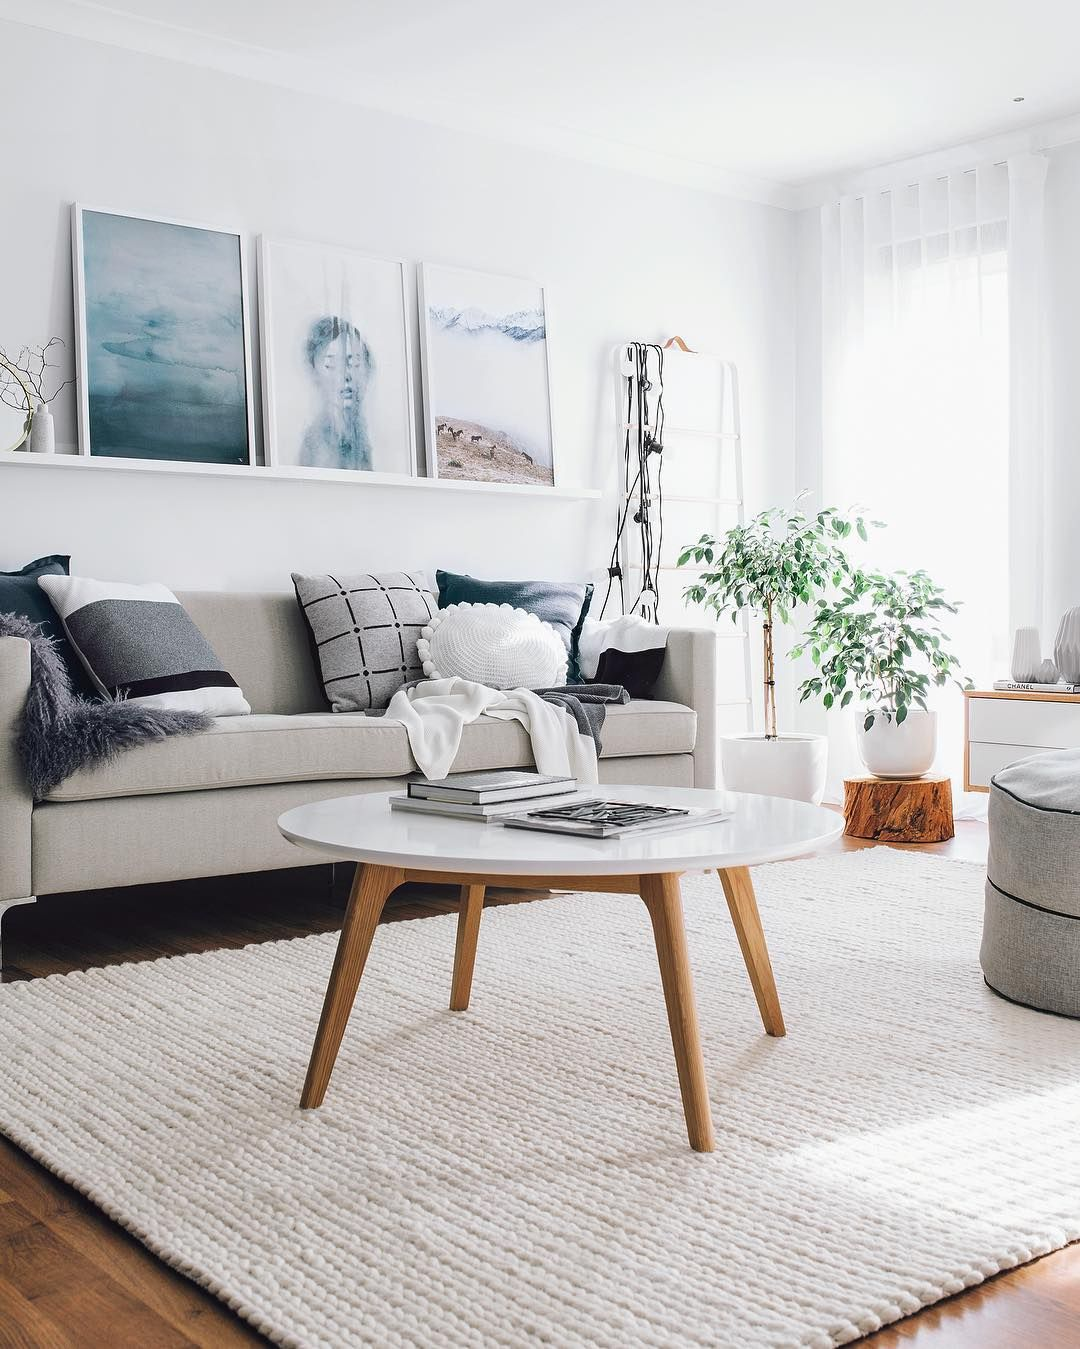 Off-white woven wool rug with a light gray sofa and a round white coffee table with wood legs